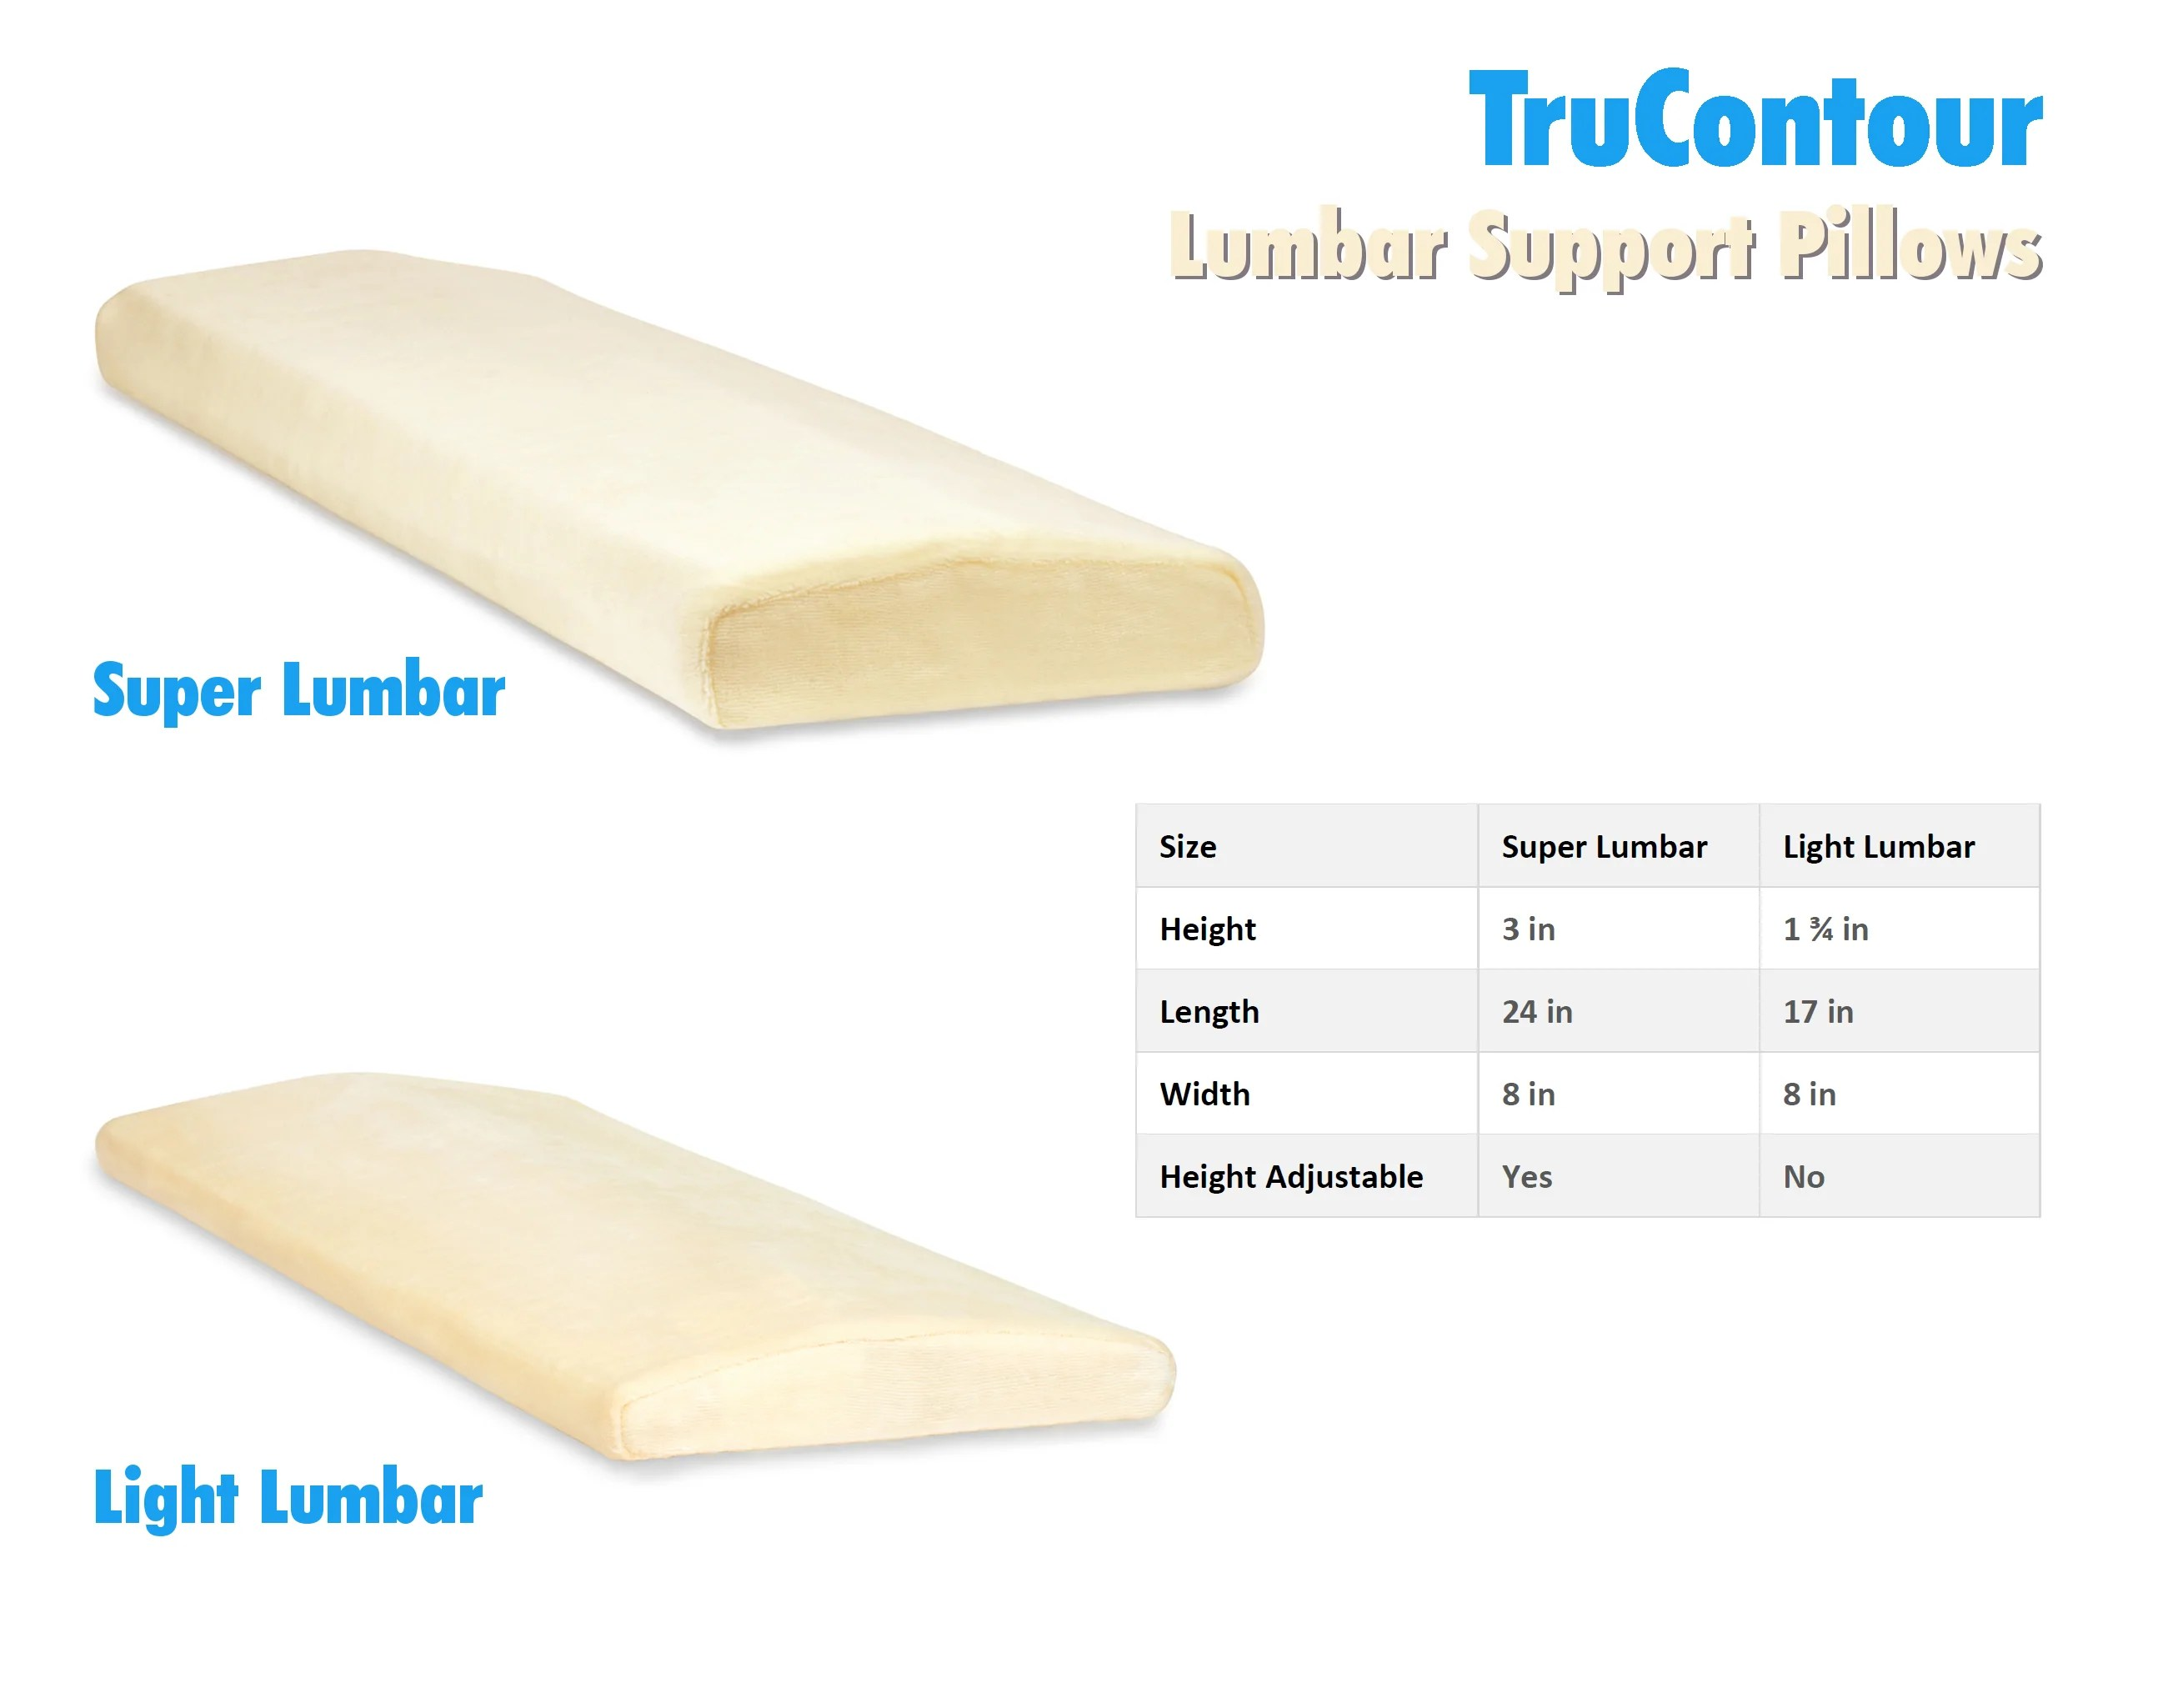 lumbar pillow for sleeping back pain support the lower back in bed with medical grade memory foam